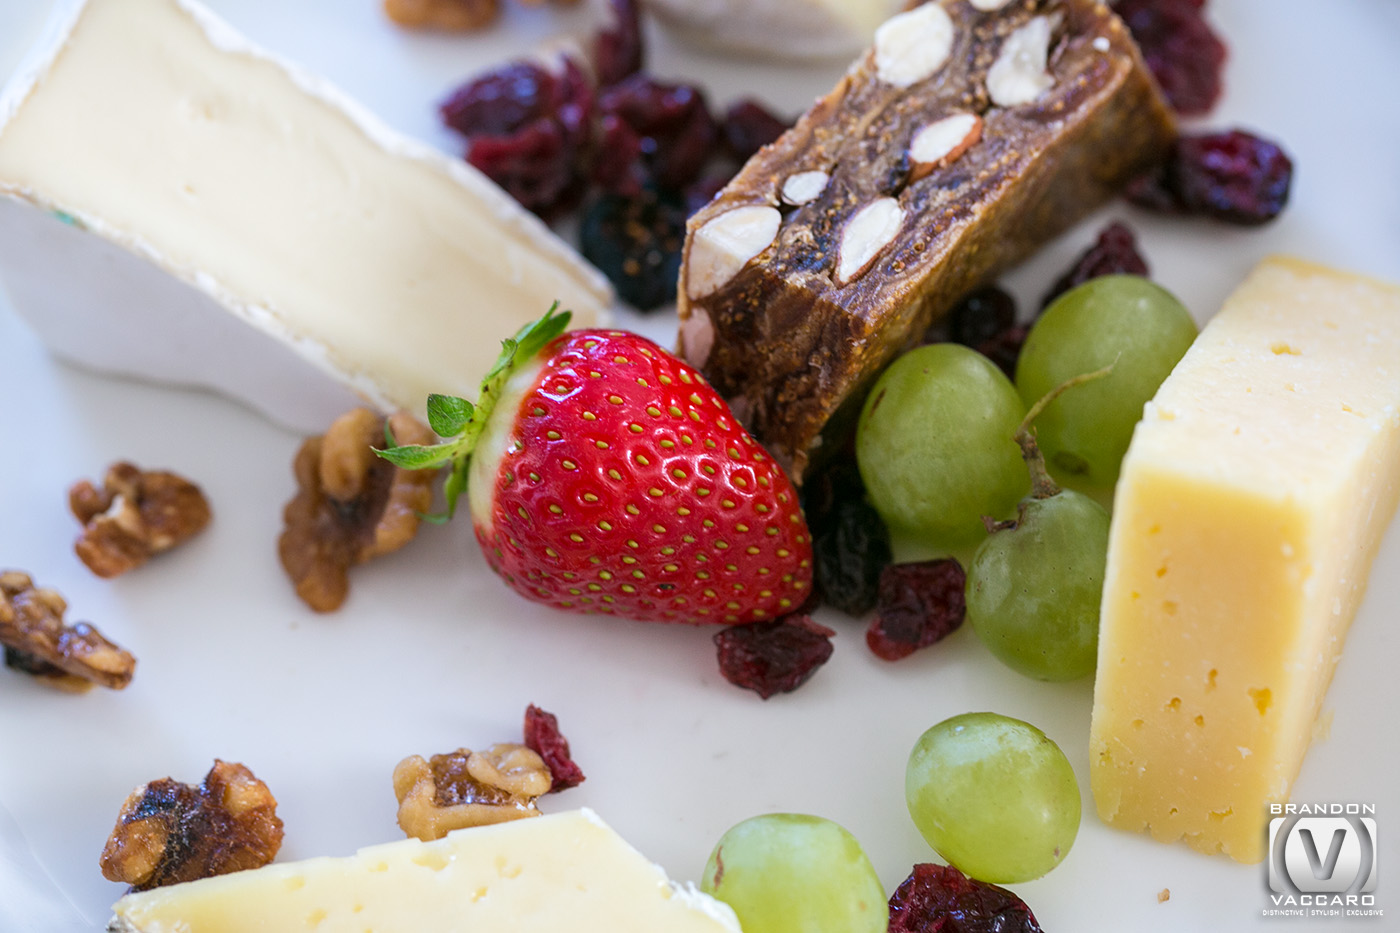 commercial-food-photography-cheese-nuts-strawberries-hotel-sofitel.jpg